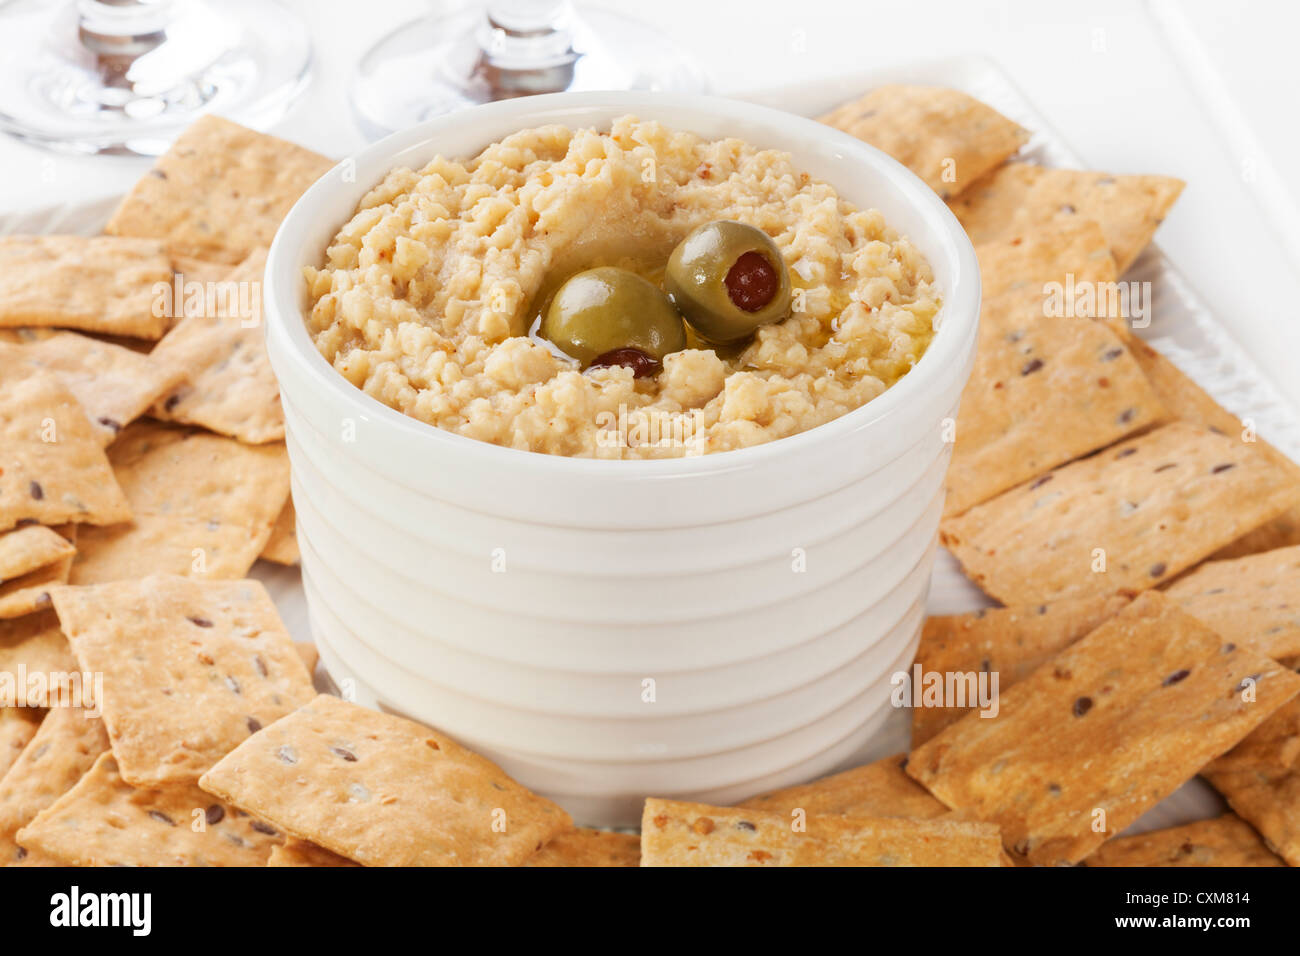 Hummus served with crackers. Low calorie version with less oil. - Stock Image